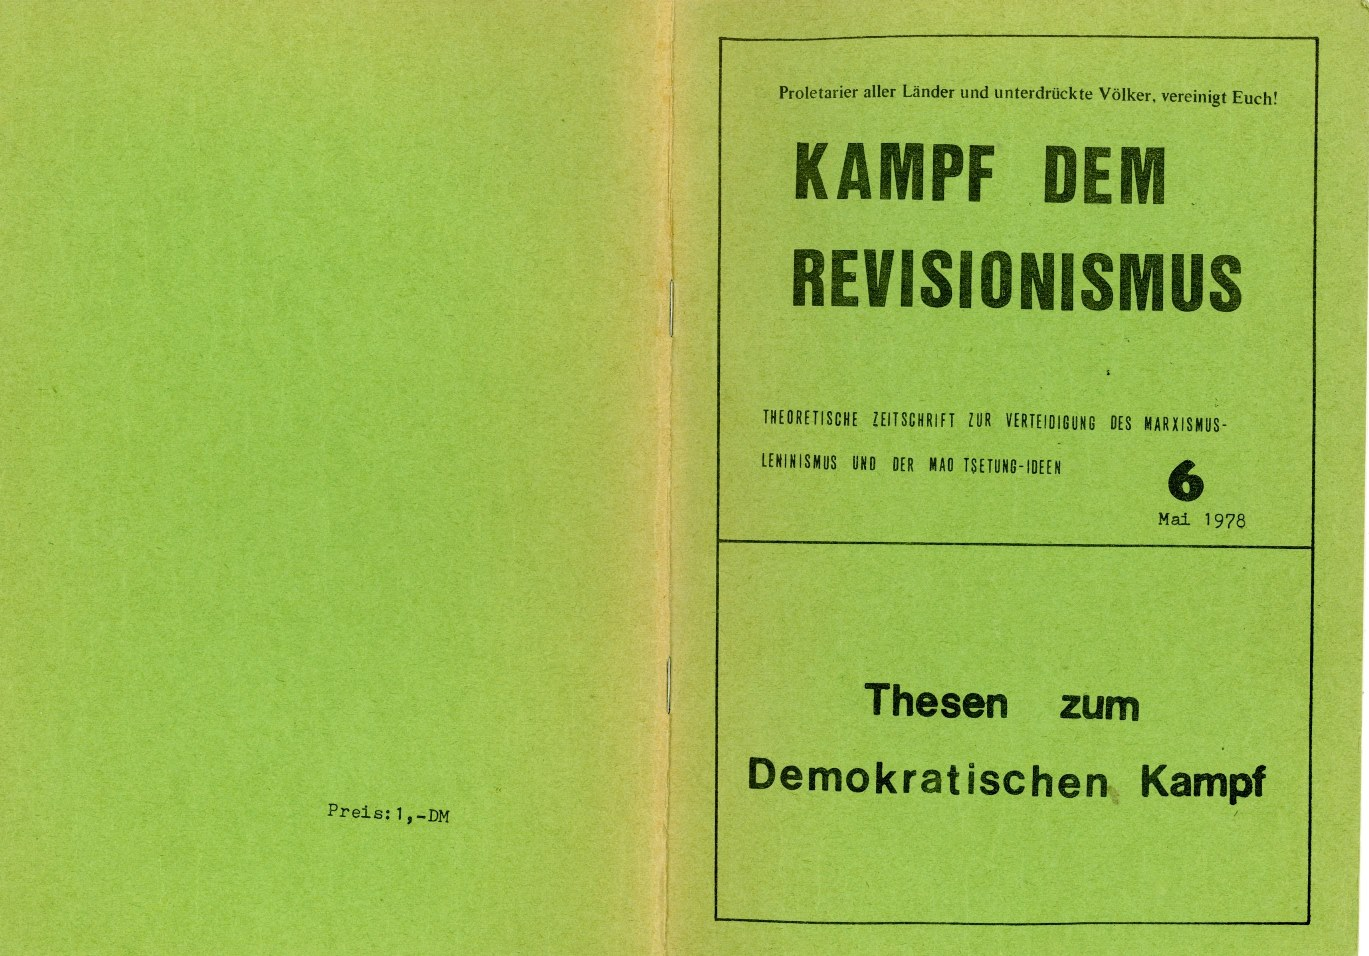 Muenchen_Kampf_dem_Revisionismus_1978_06_01